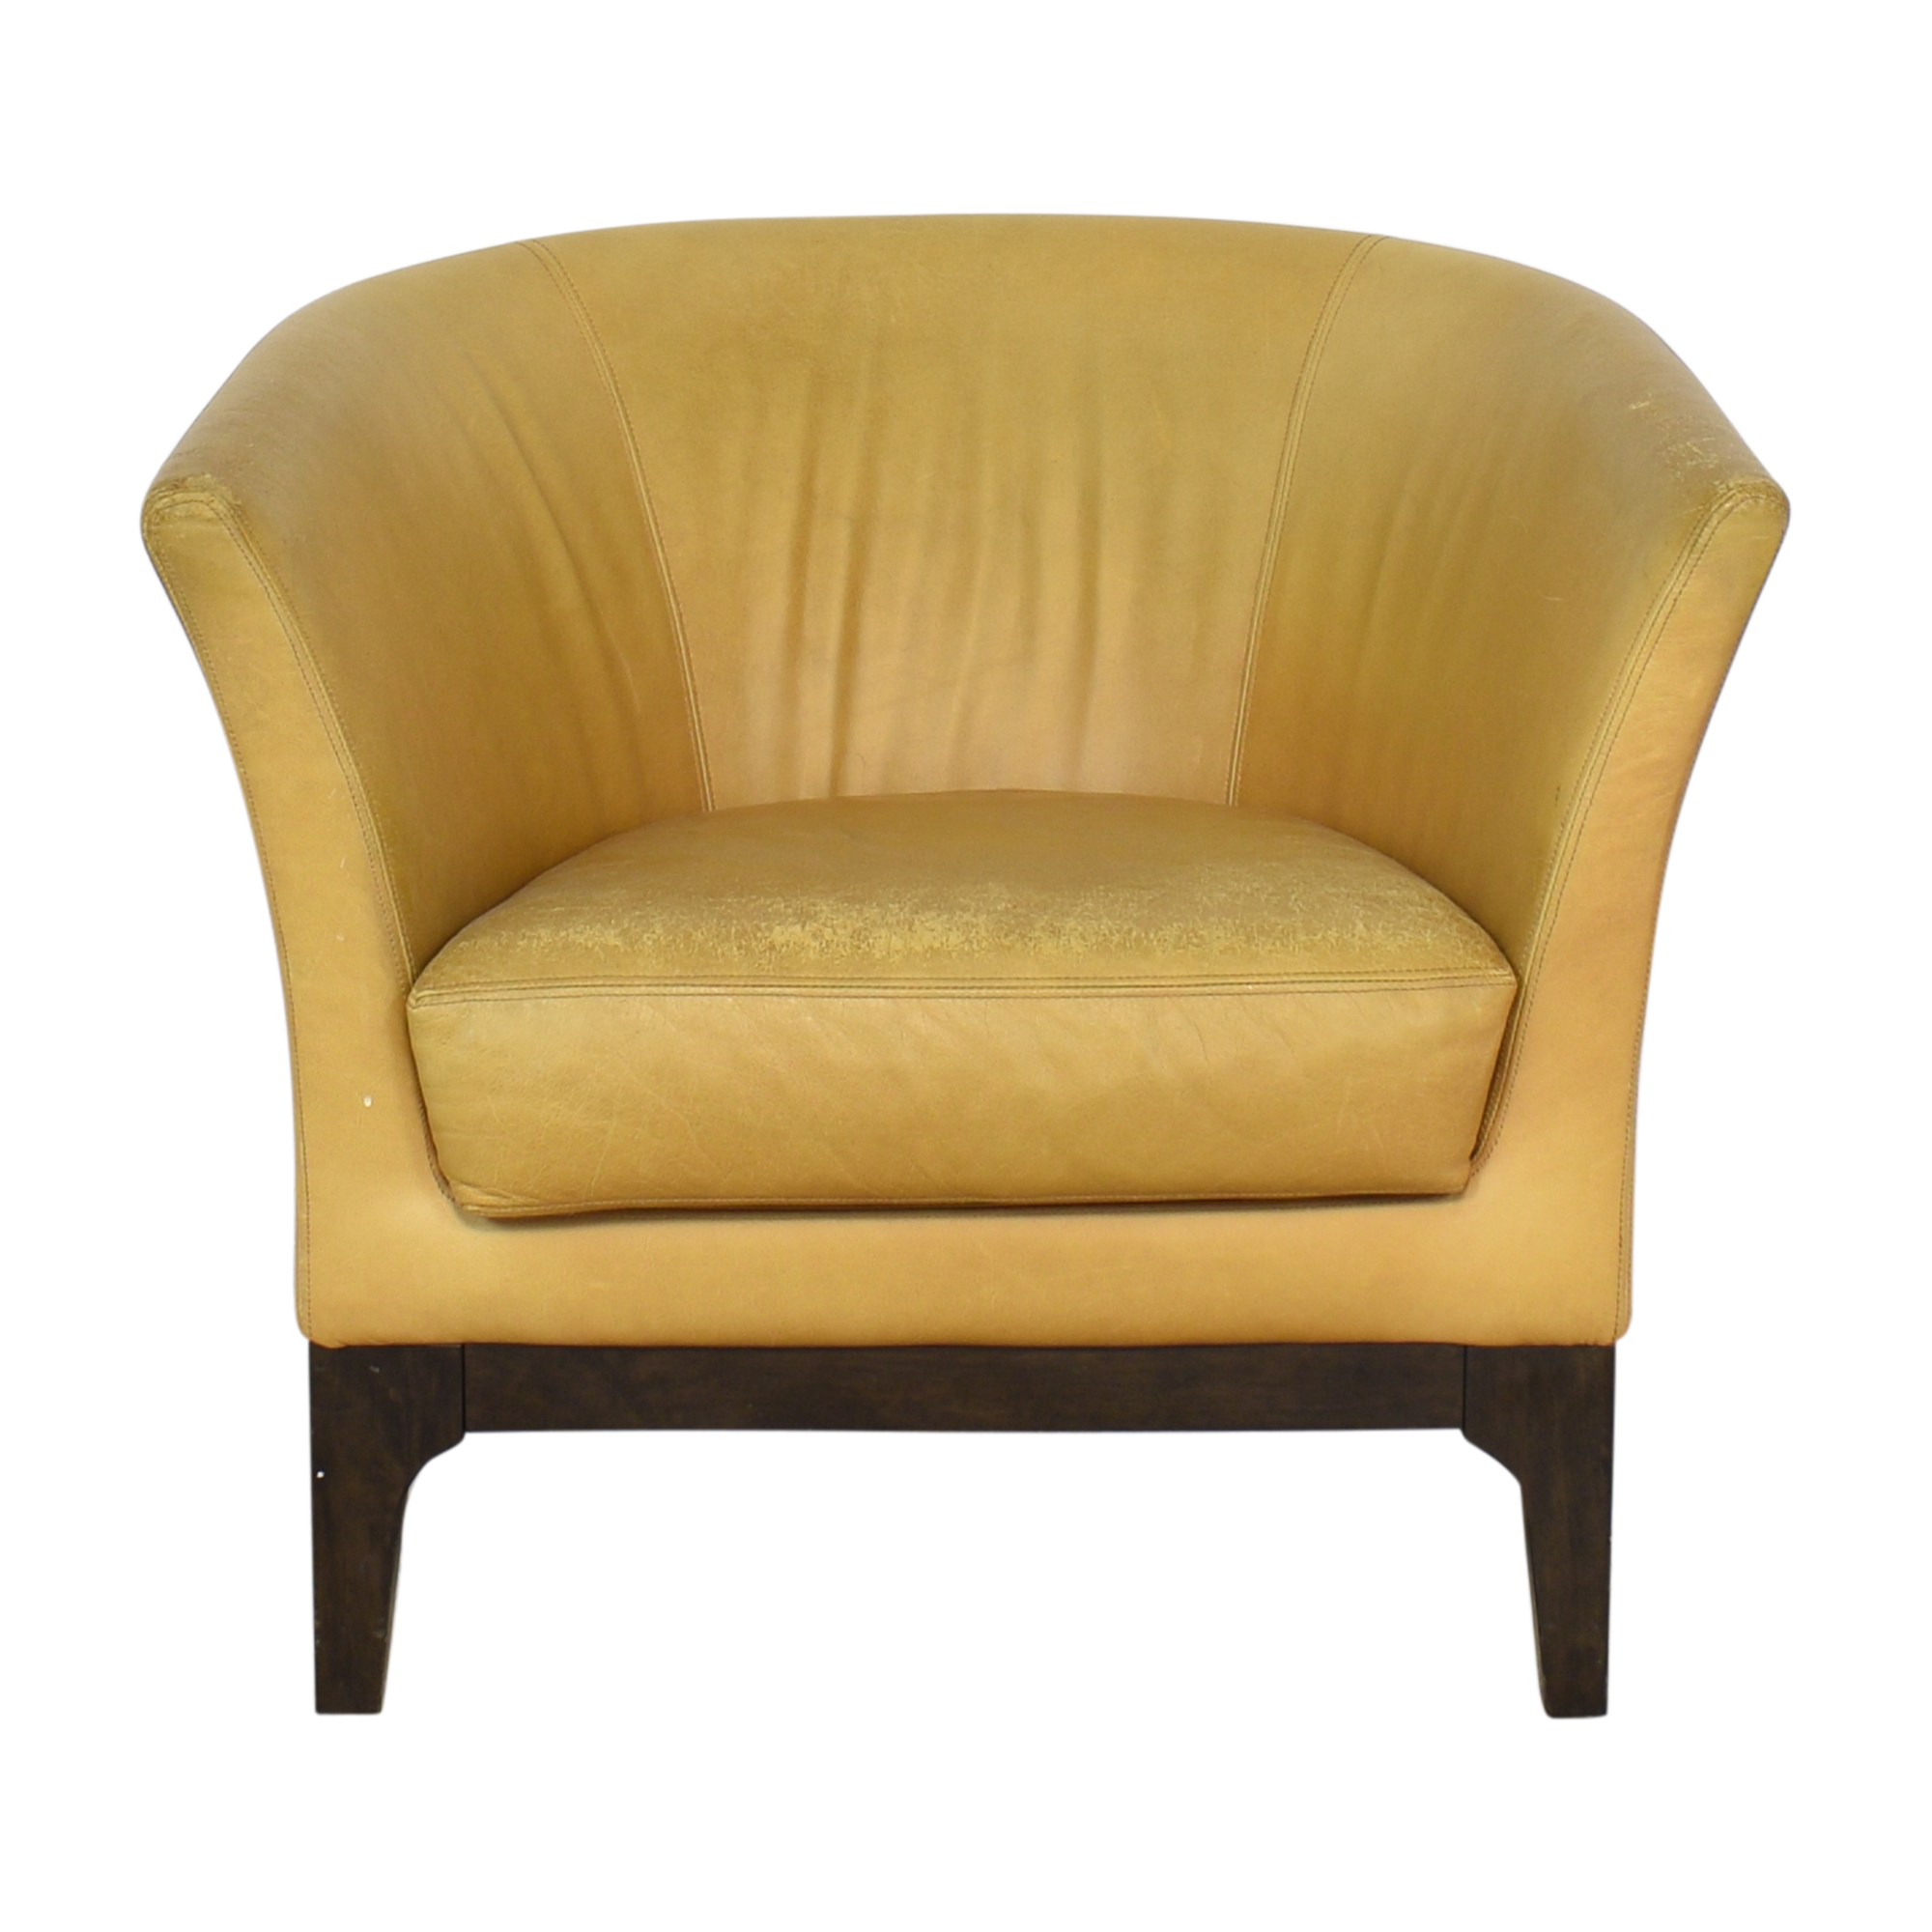 West Elm West Elm Tulip Chair discount